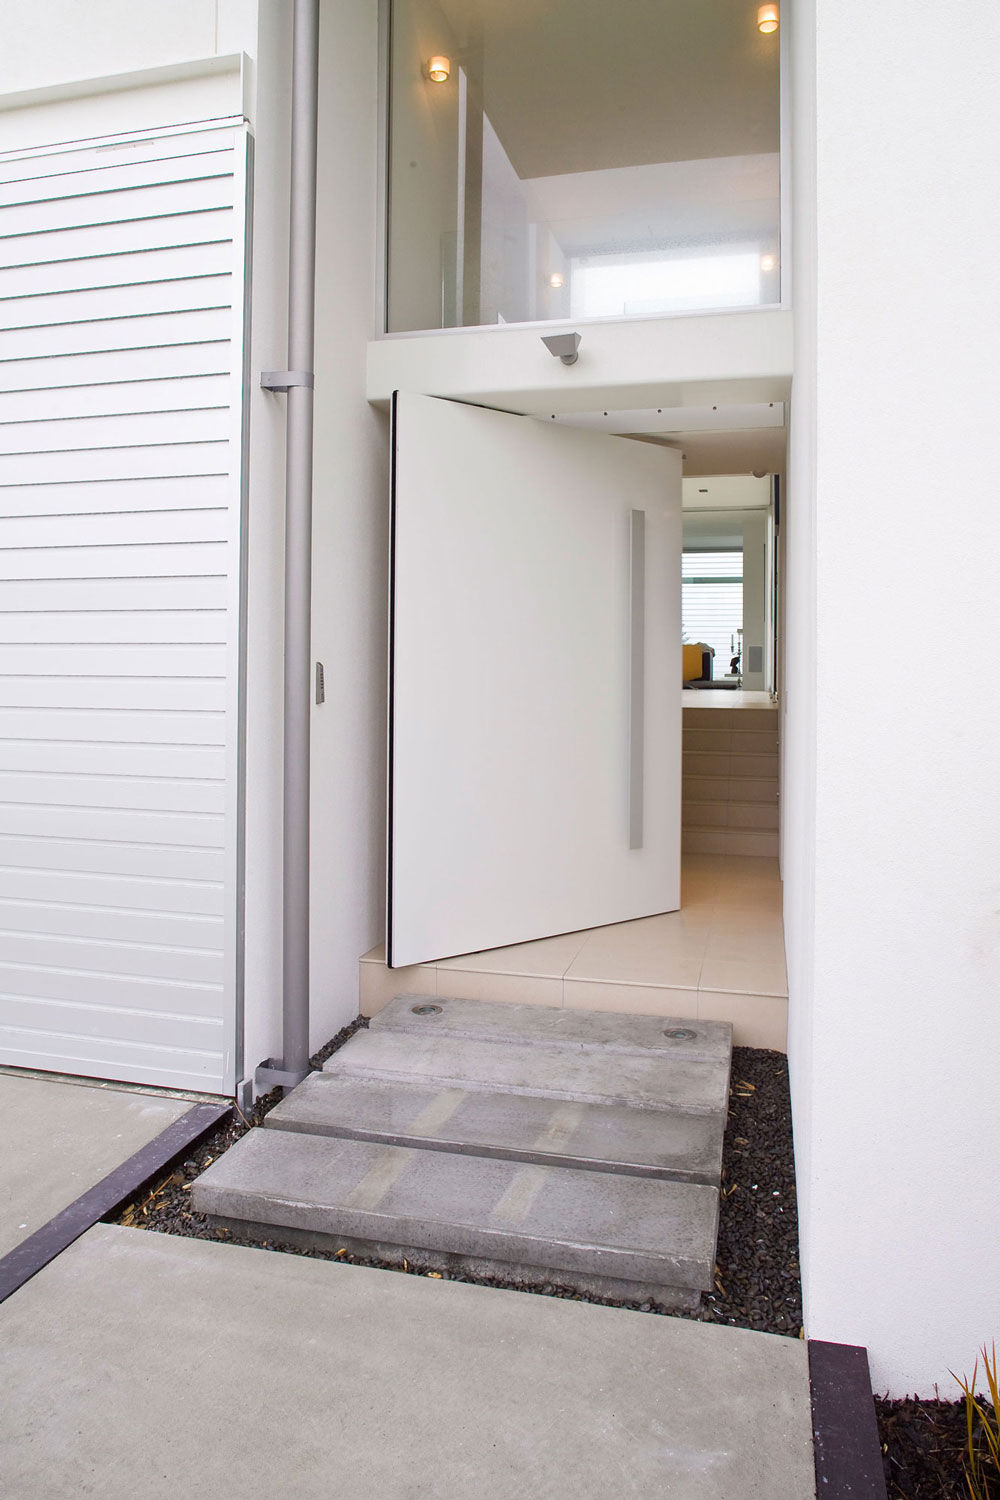 AutoPivot system with AluTec door